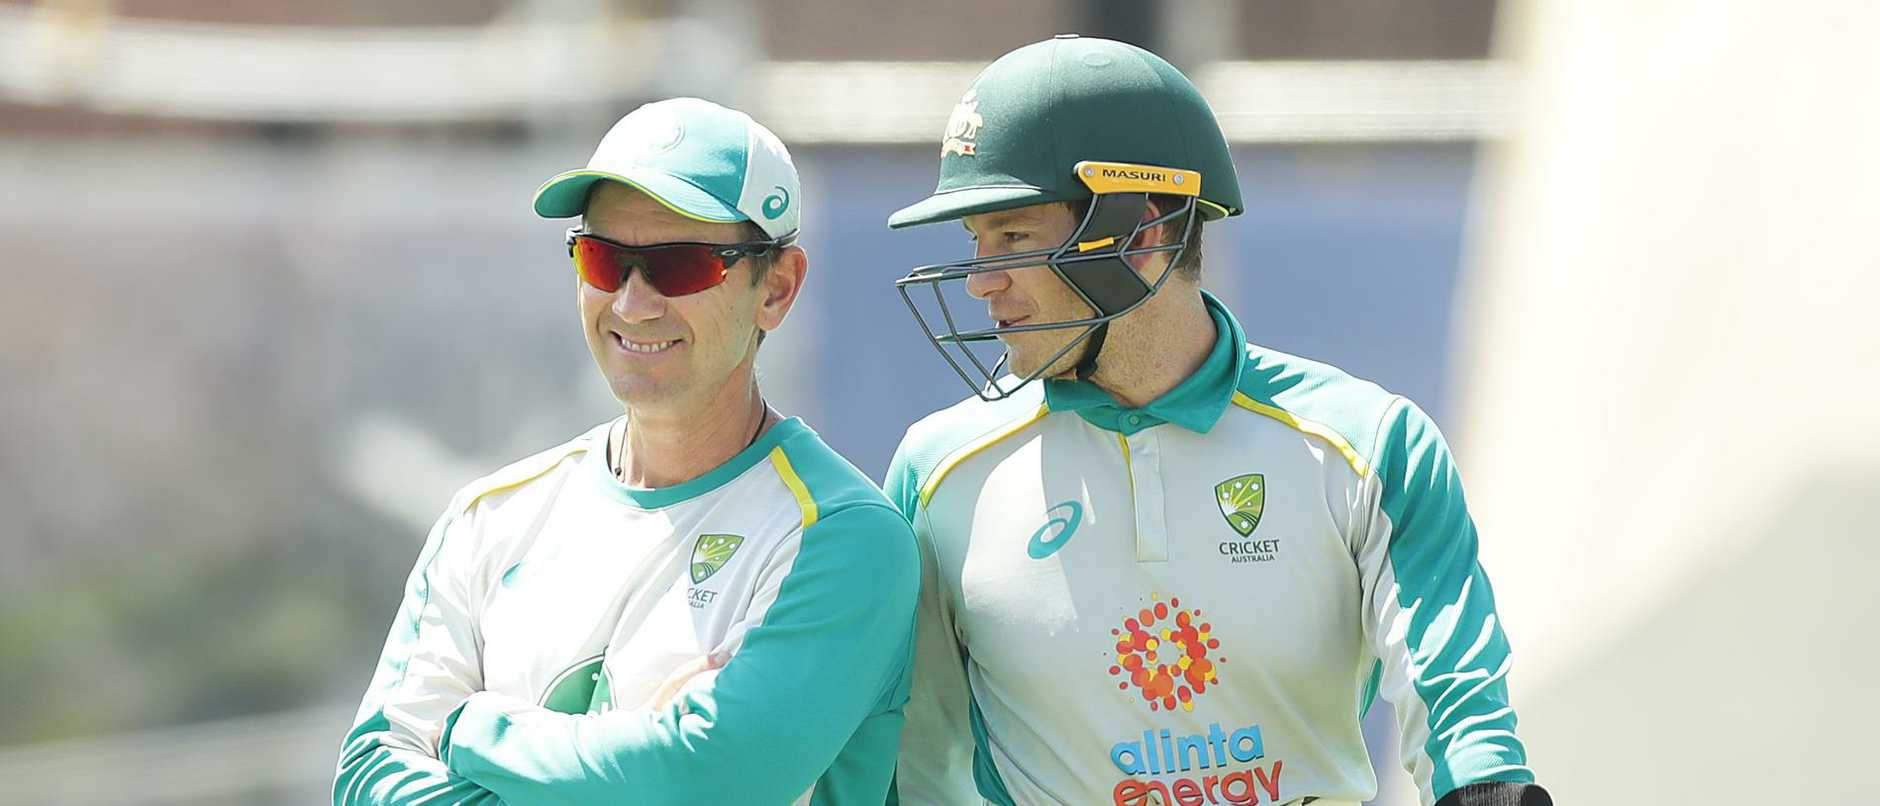 It's been 35 years since Australia hired its first national cricket coach yet the game is still working out who's the boss writes Robert Craddock.